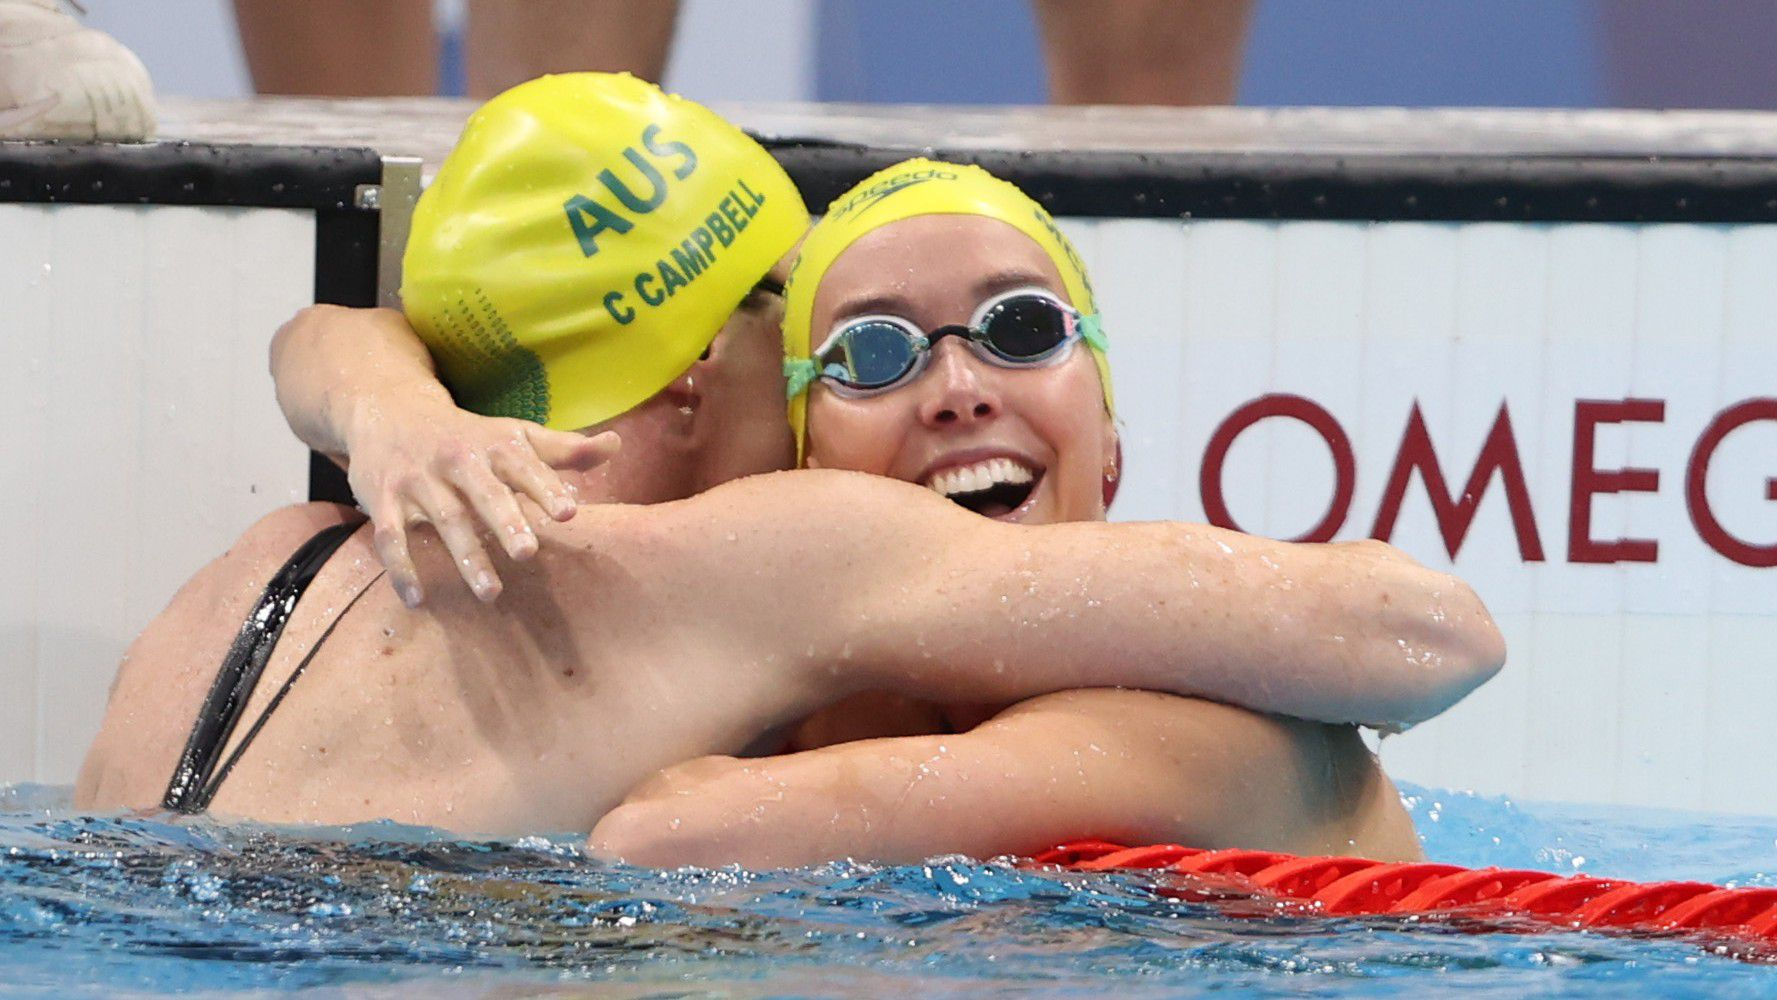 Tokyo Olympics 2021: Beautiful moment between Cate Campbell and Emma McKeon touches Australia